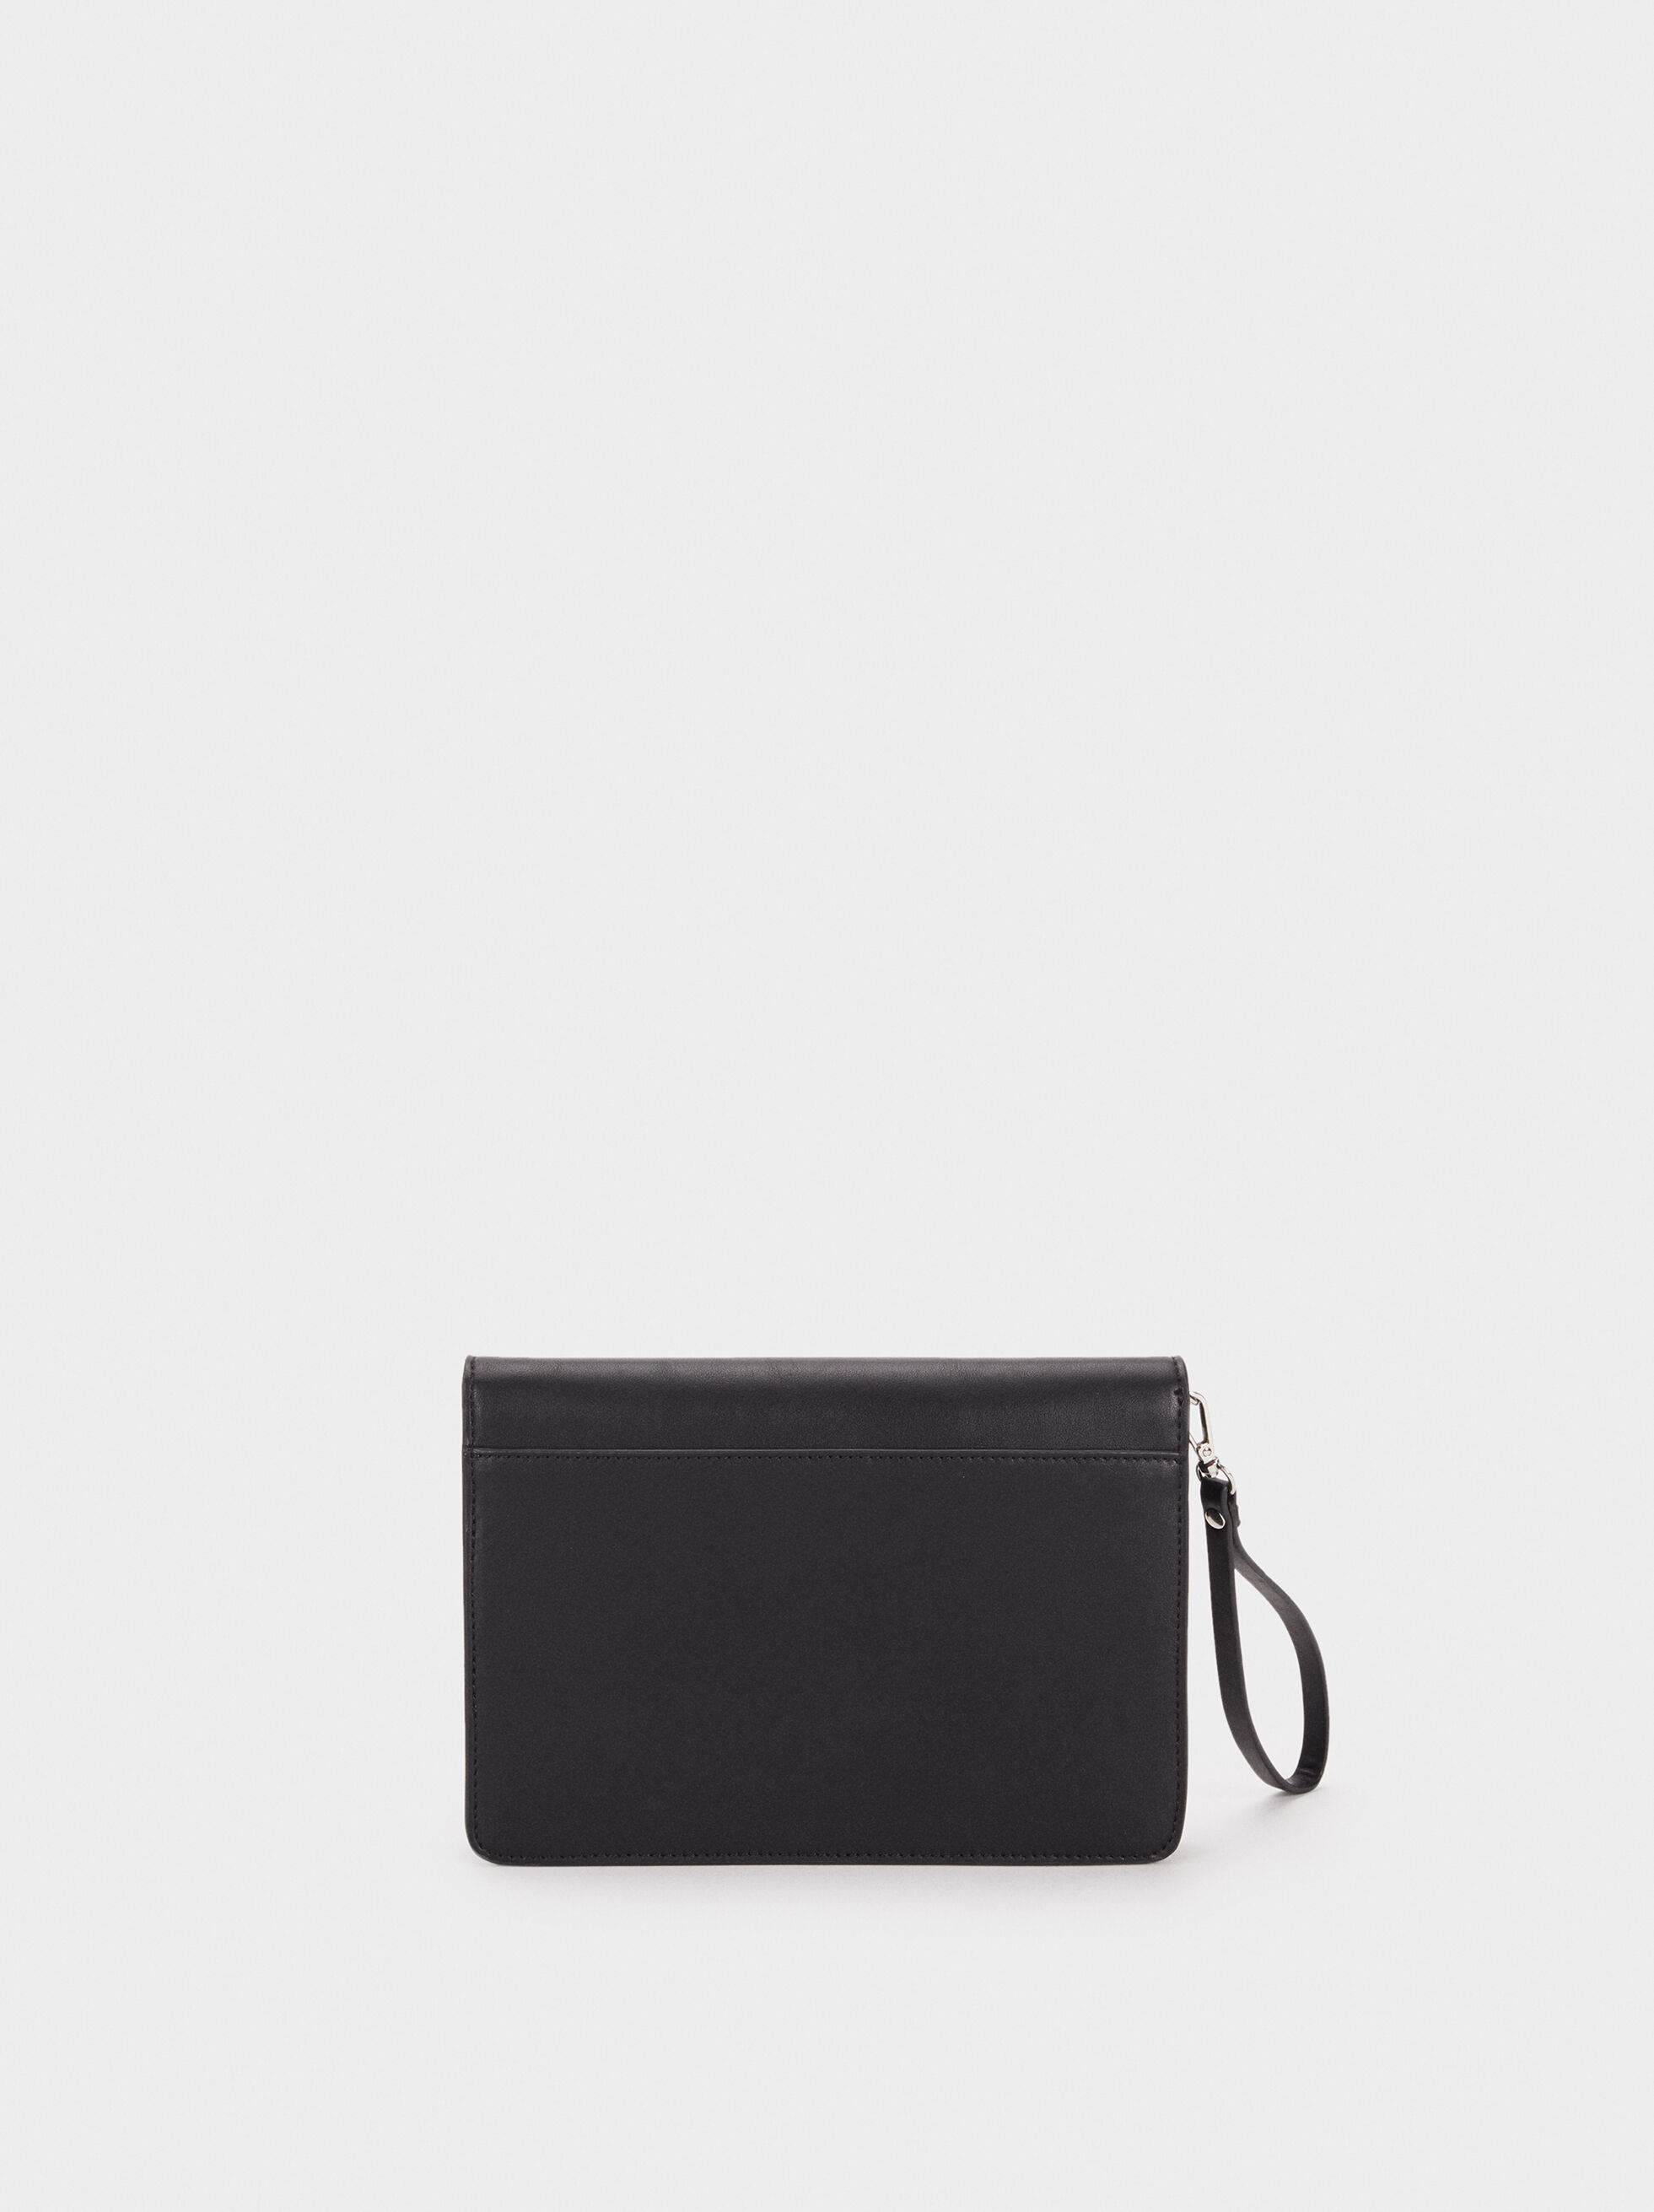 Party Clutch With Handle, Black, hi-res